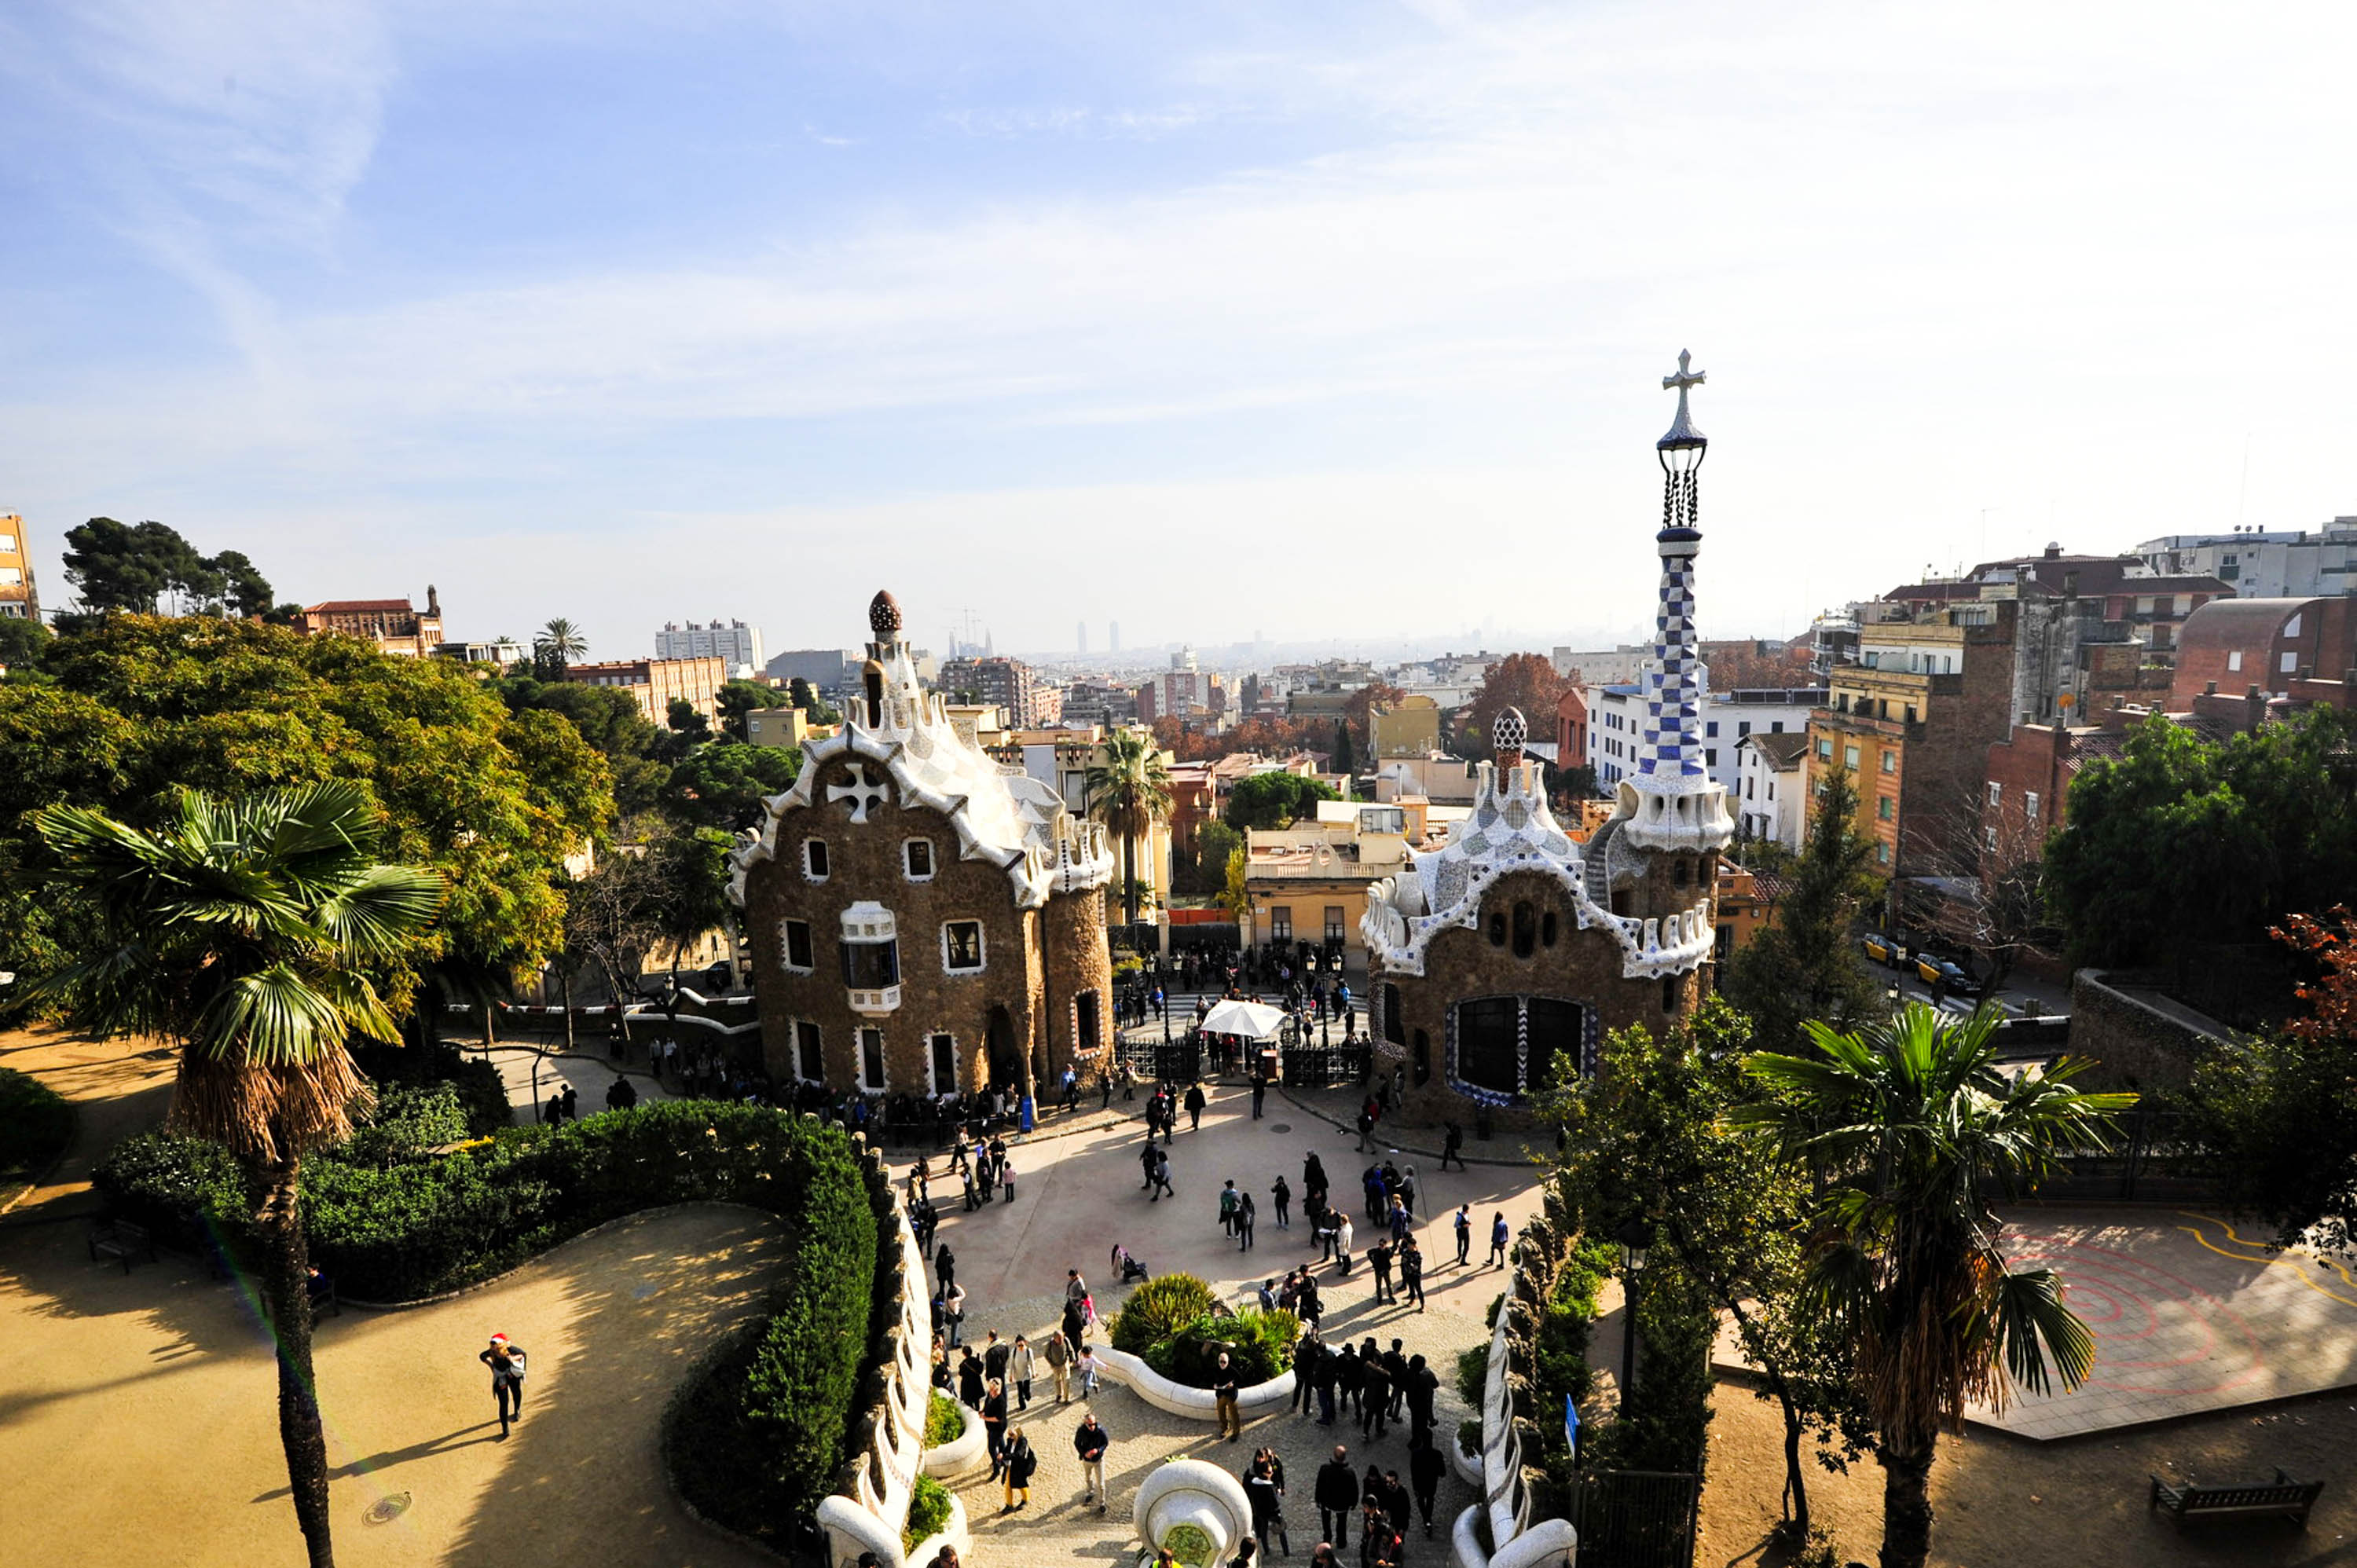 72 hours in Barcelona: Architectural Wonderland